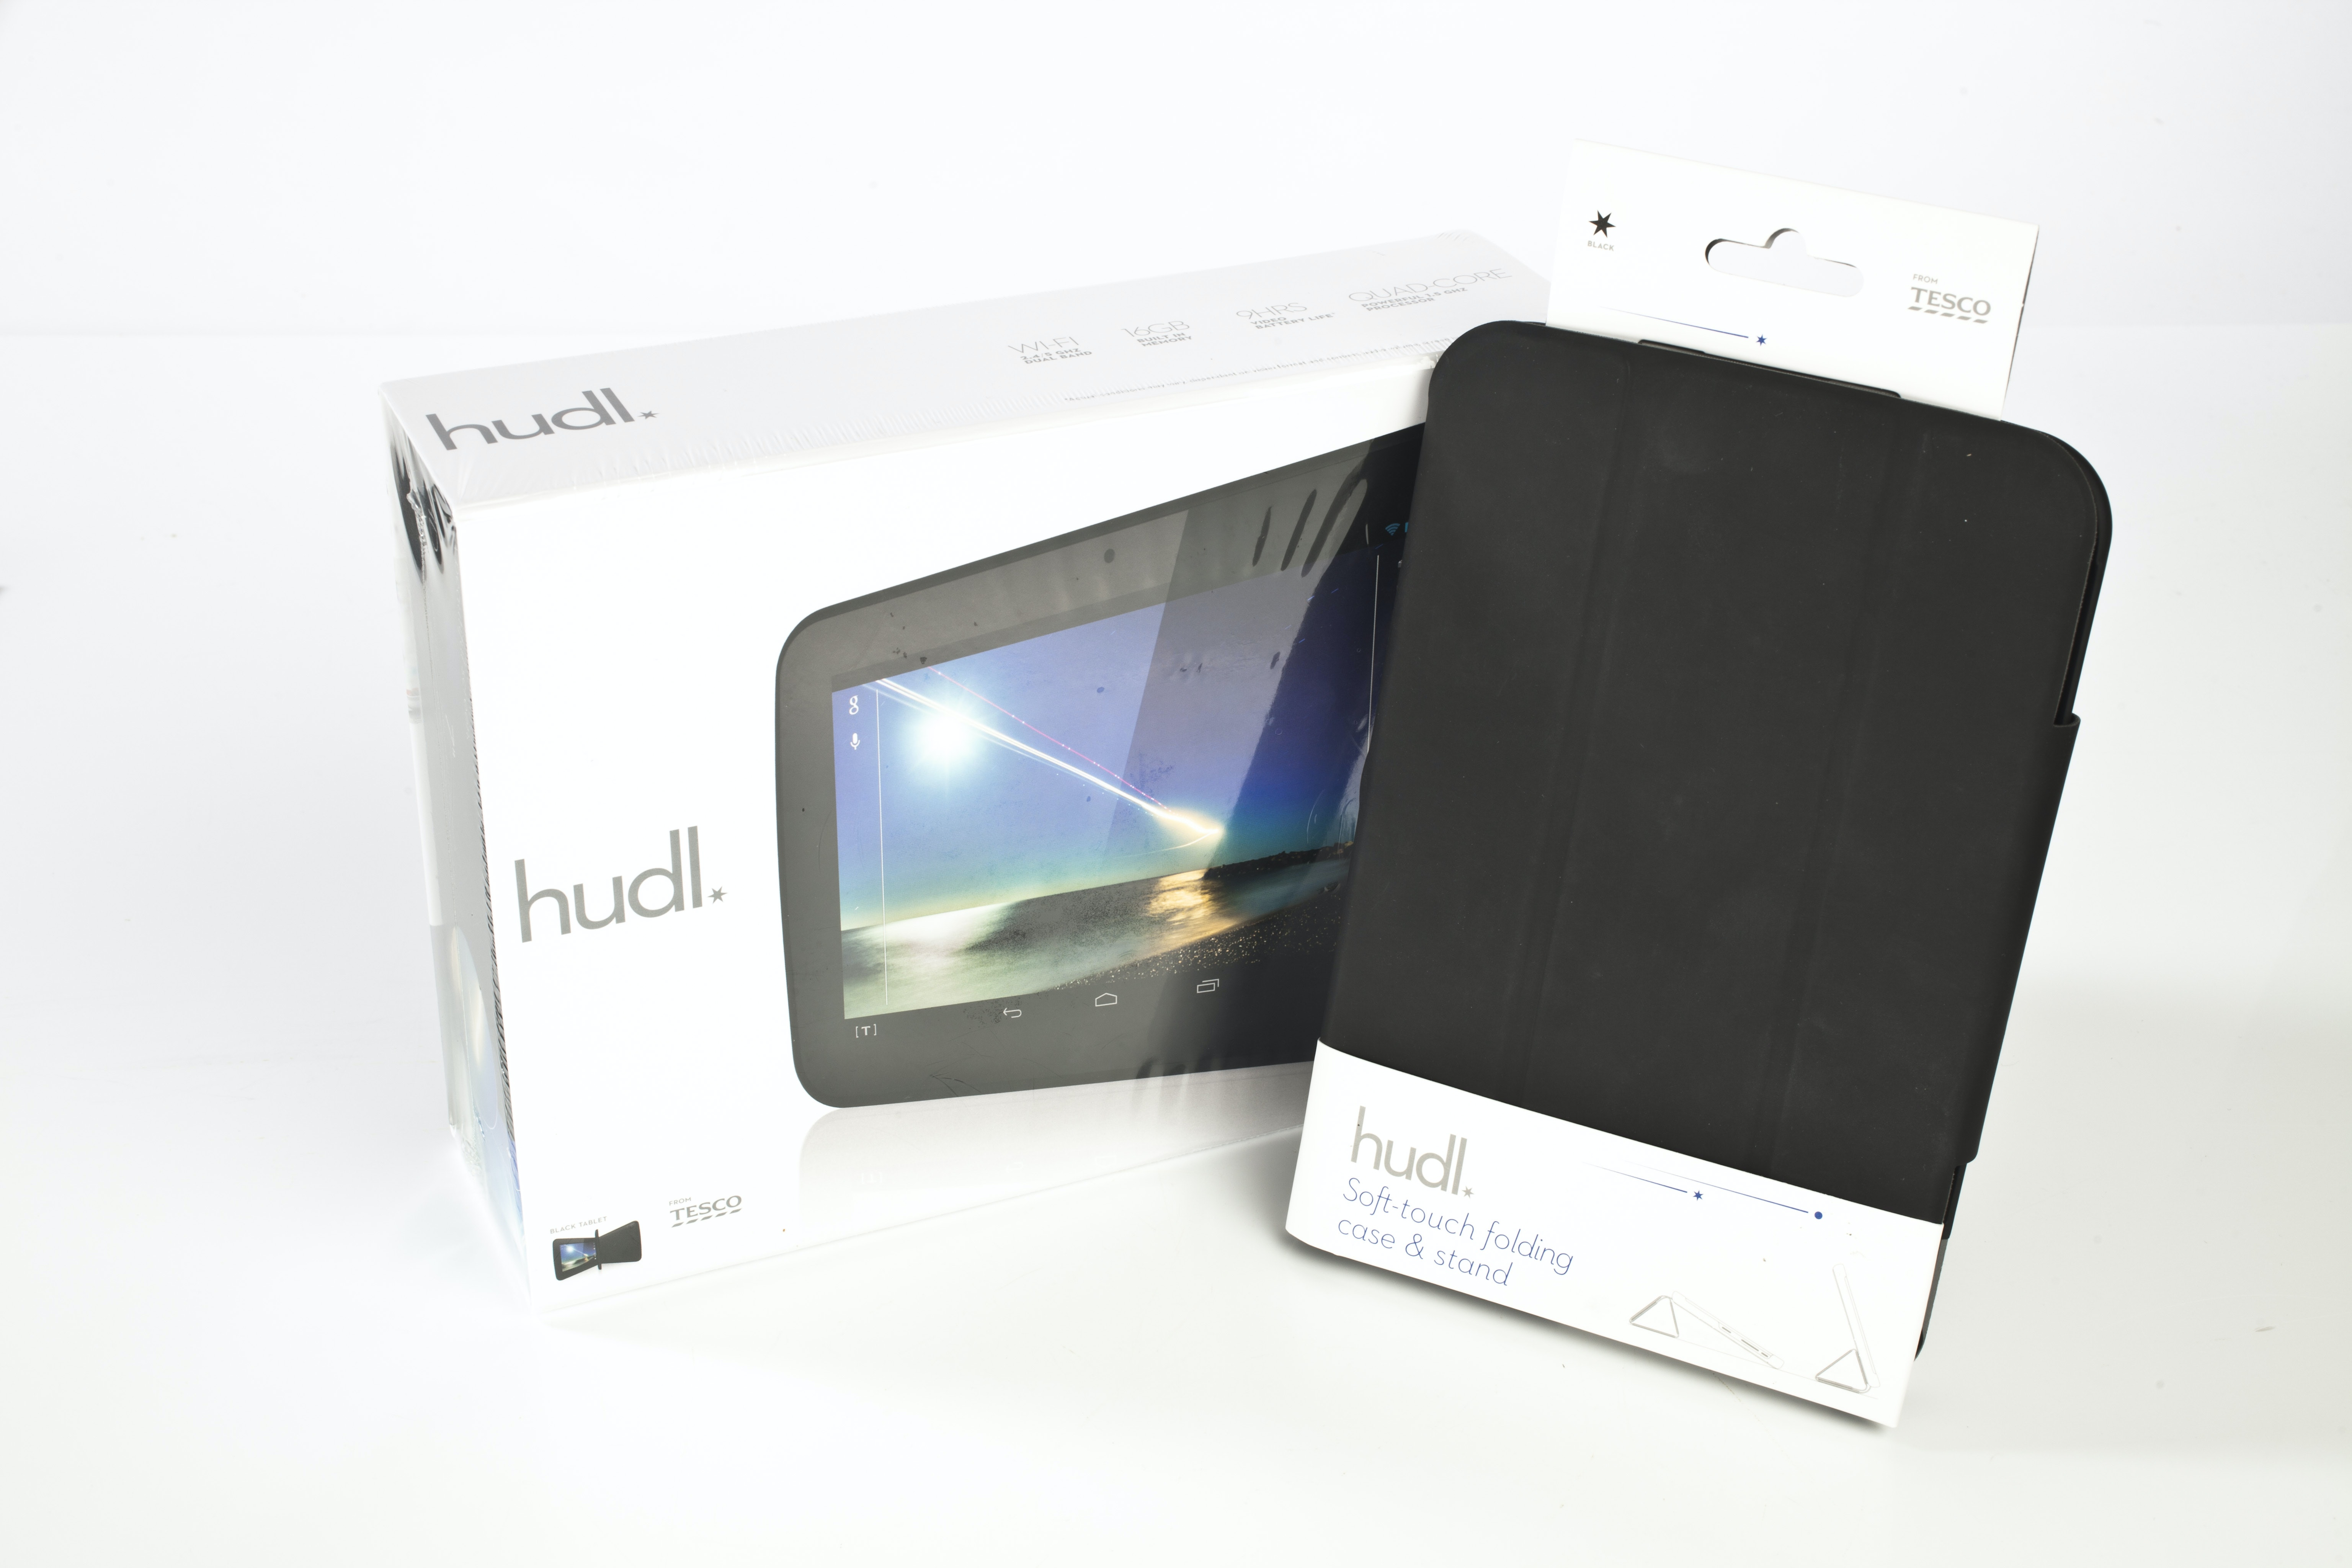 Hudl Android Tablet and case/stand sweepstakes